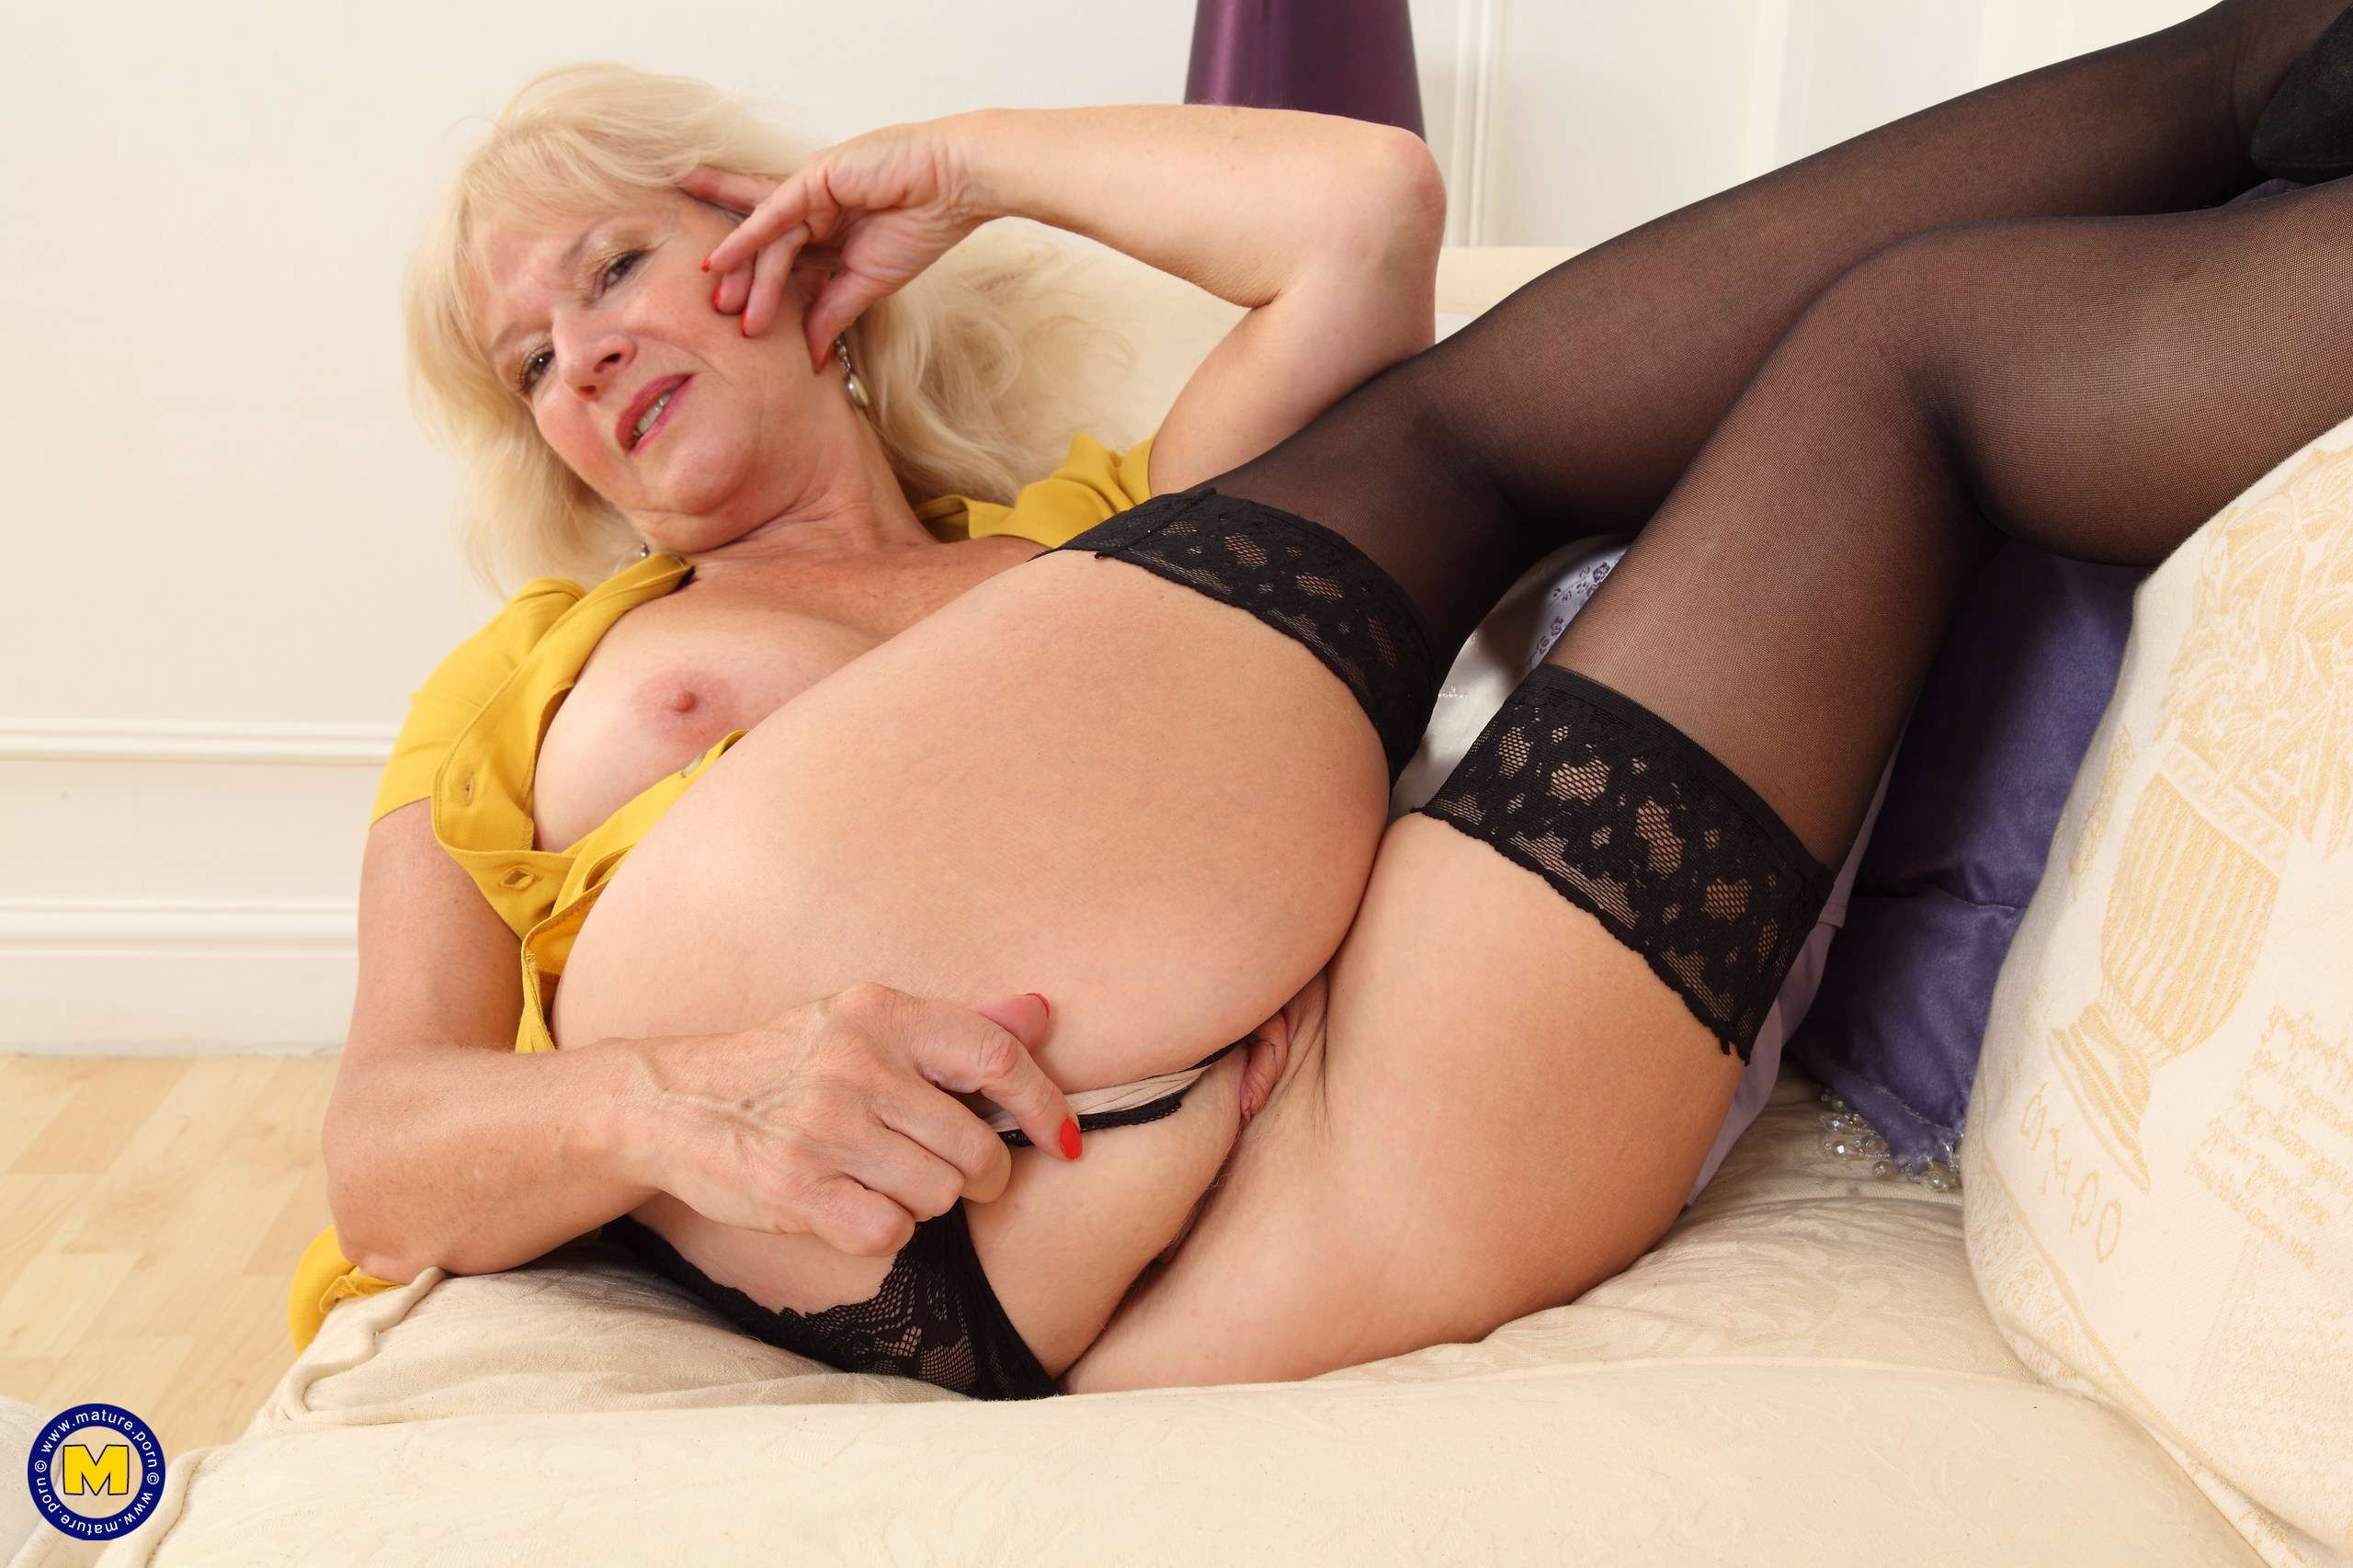 Naughty cougar Emily Jane playing with herself